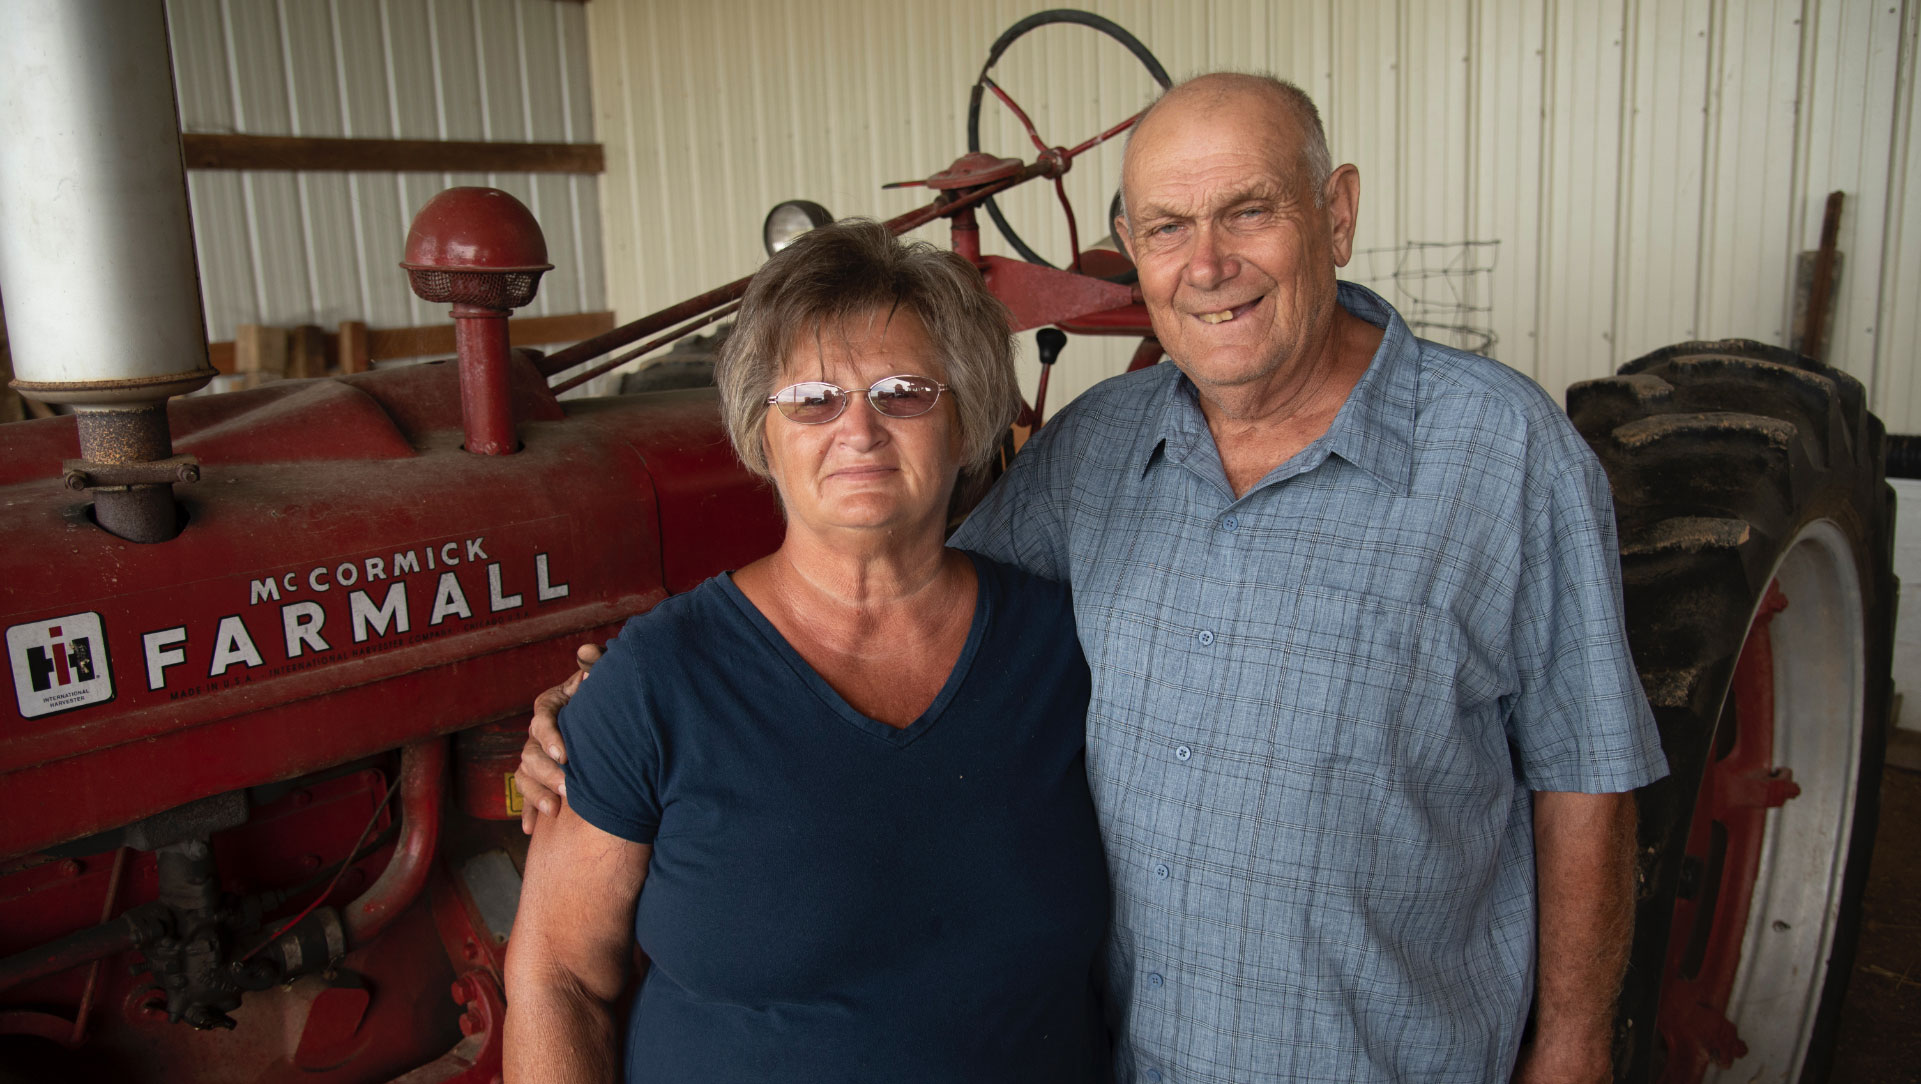 Charlotte and her husband, an older man in a blue button-up shirt, posing for a photo in front of an older red tractor.